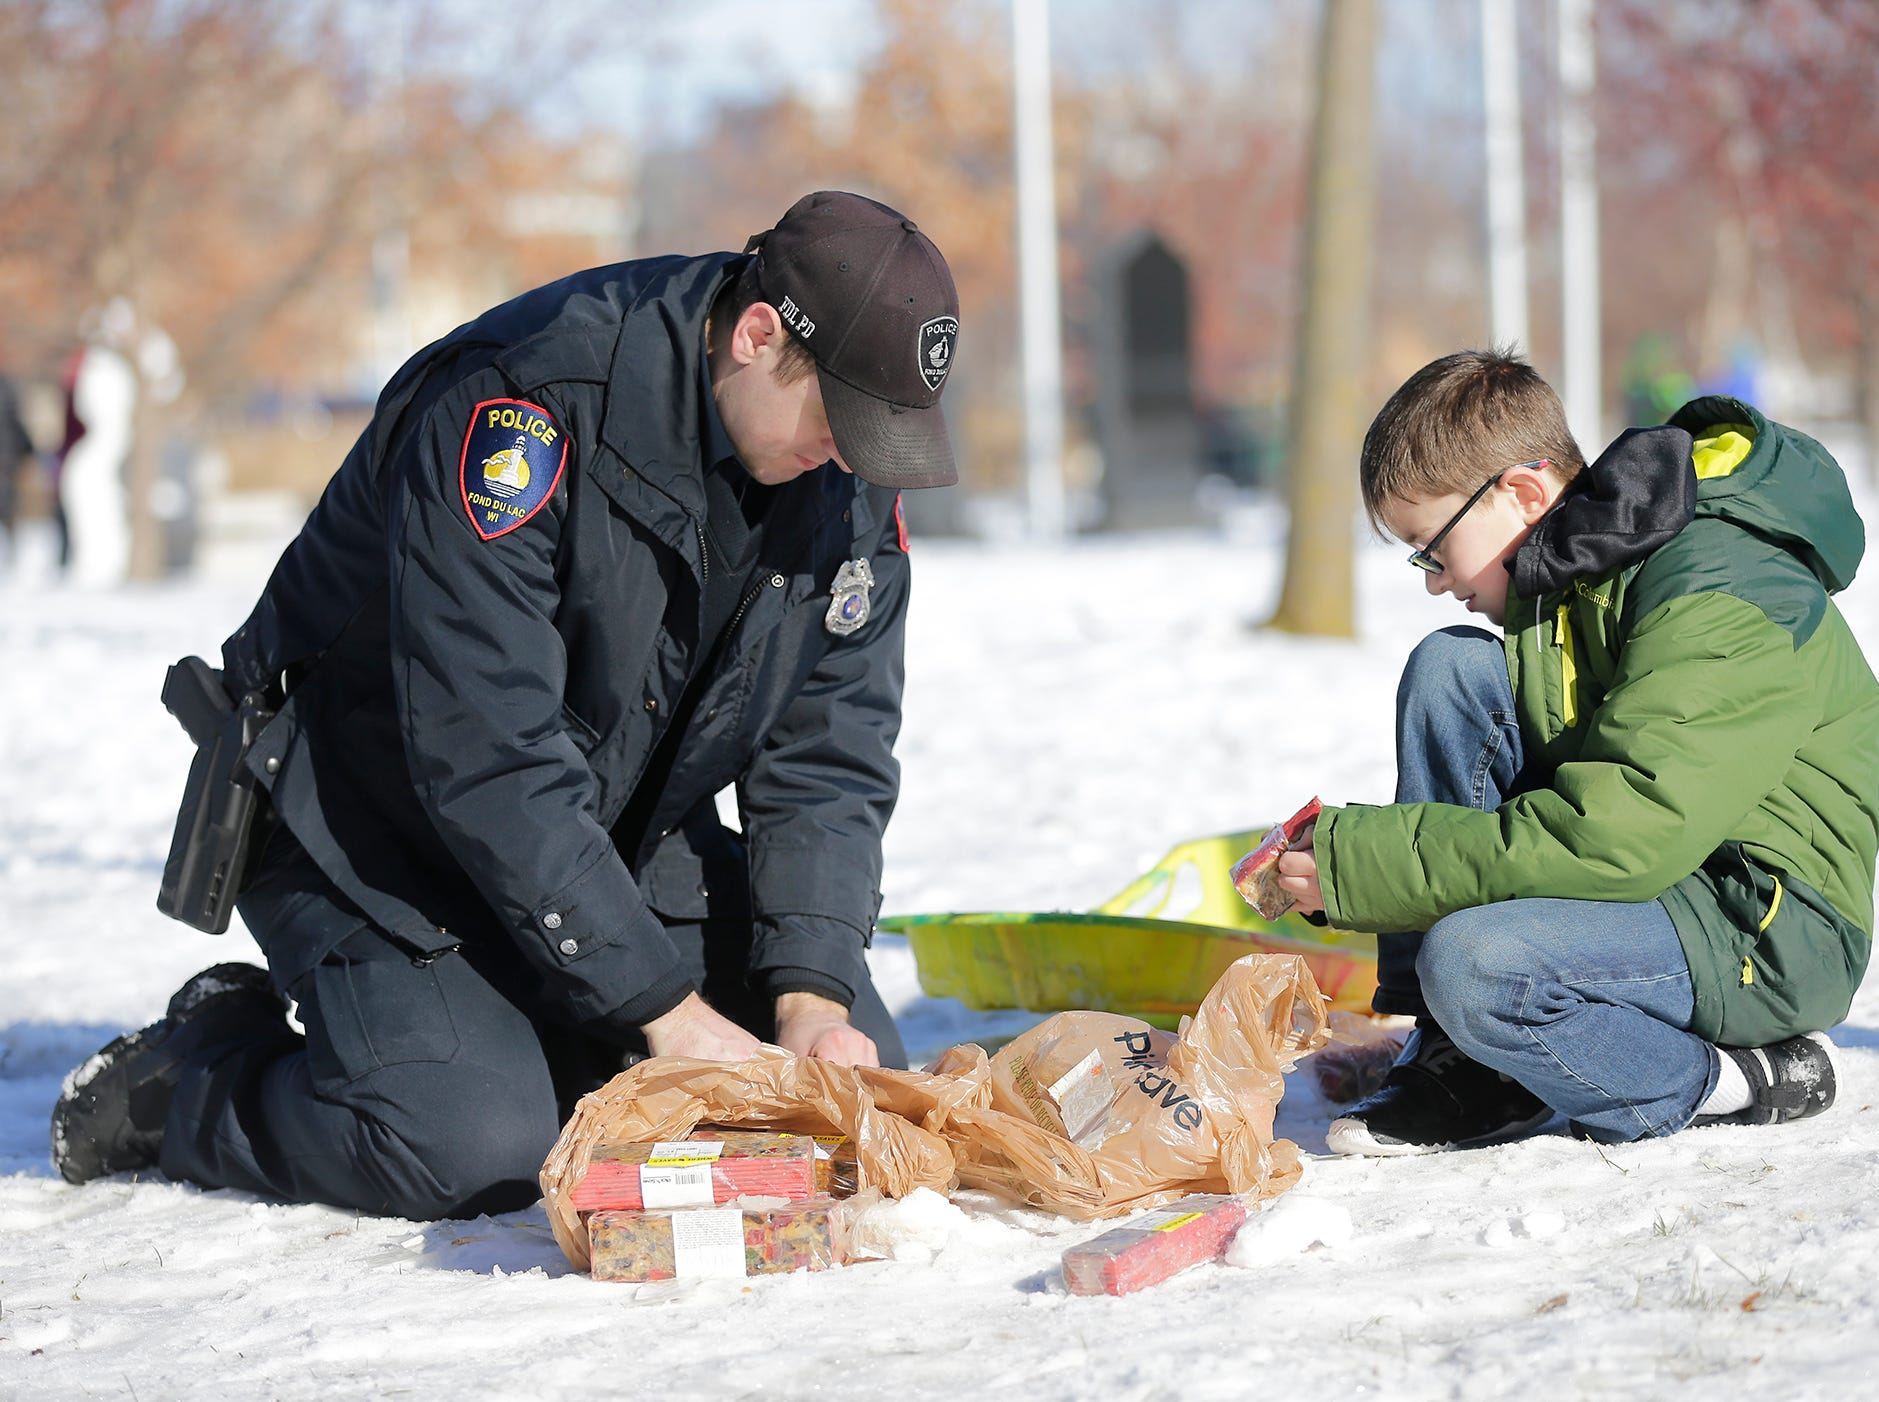 Fond du Lac Police Officer Erik Foster and Declan O'Connor of Fond du lac prepare fruit cakes for the fruit cake toss at Winterfest Saturday, January 5, 2019 at Hamilton park in Fond du Lac, Wisconsin. Doug Raflik/USA TODAY NETWORK-Wisconsin